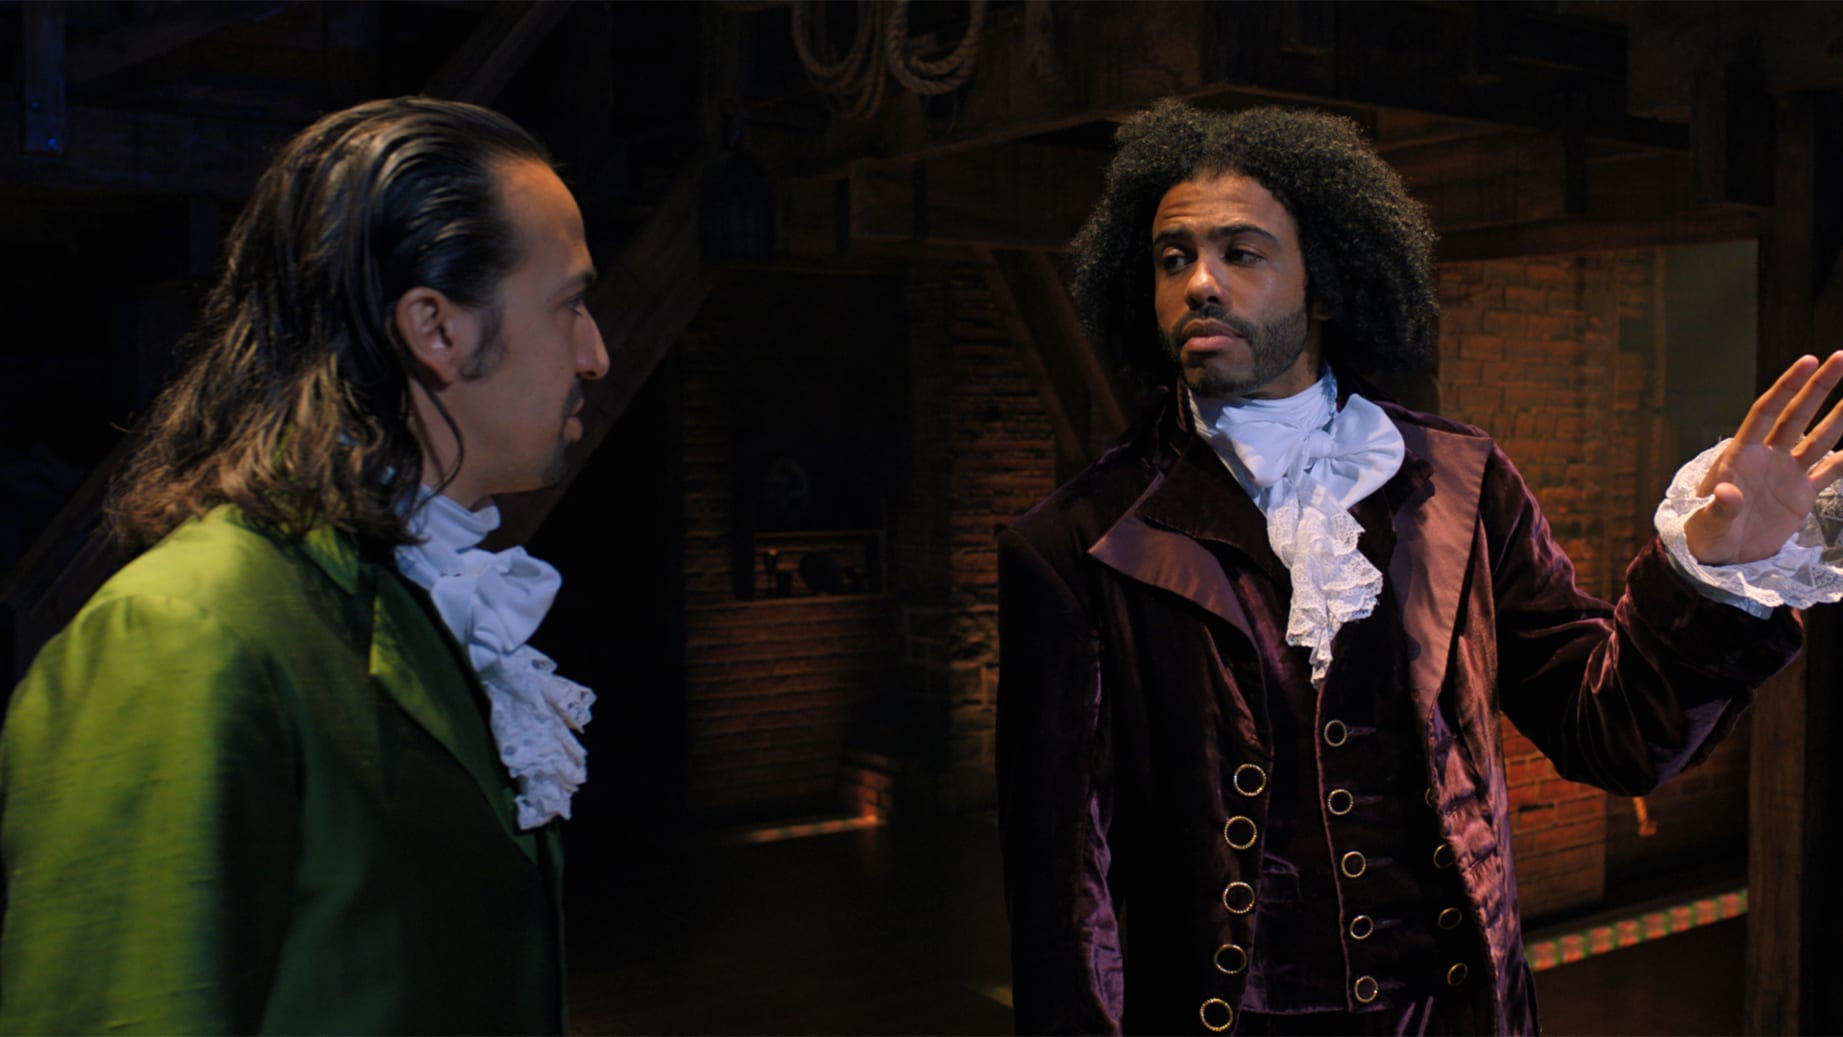 Lin-Manuel Miranda is Alexander Hamilton and Daveed Diggs is the Marquis de Lafayette in HAMILTON, the filmed version of the original Broadway production.